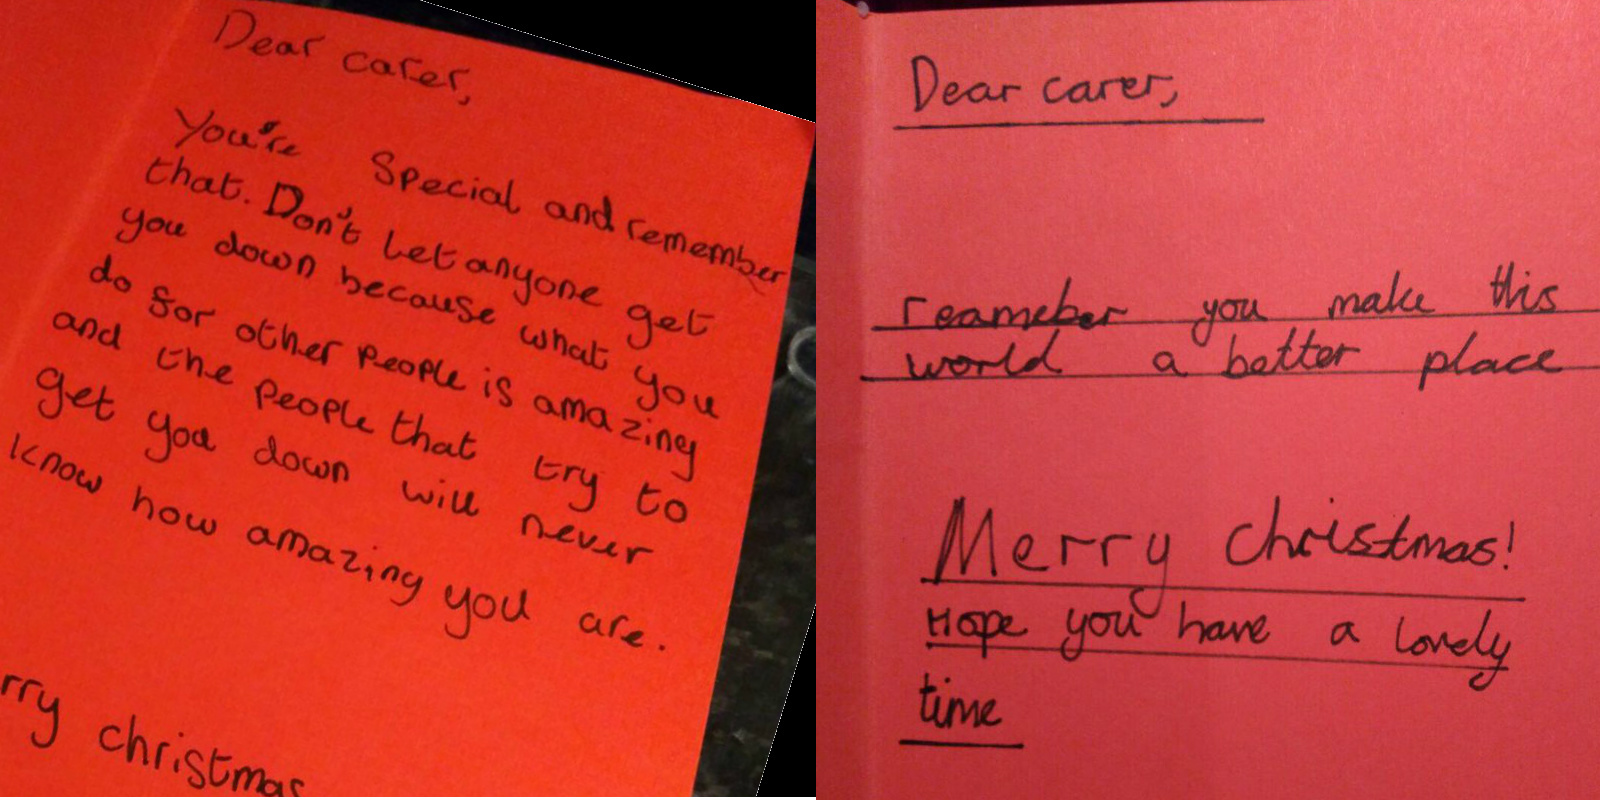 Letters written by Covingham Park pupils to the carers. Picture: SWINDON CARERS CENTRE